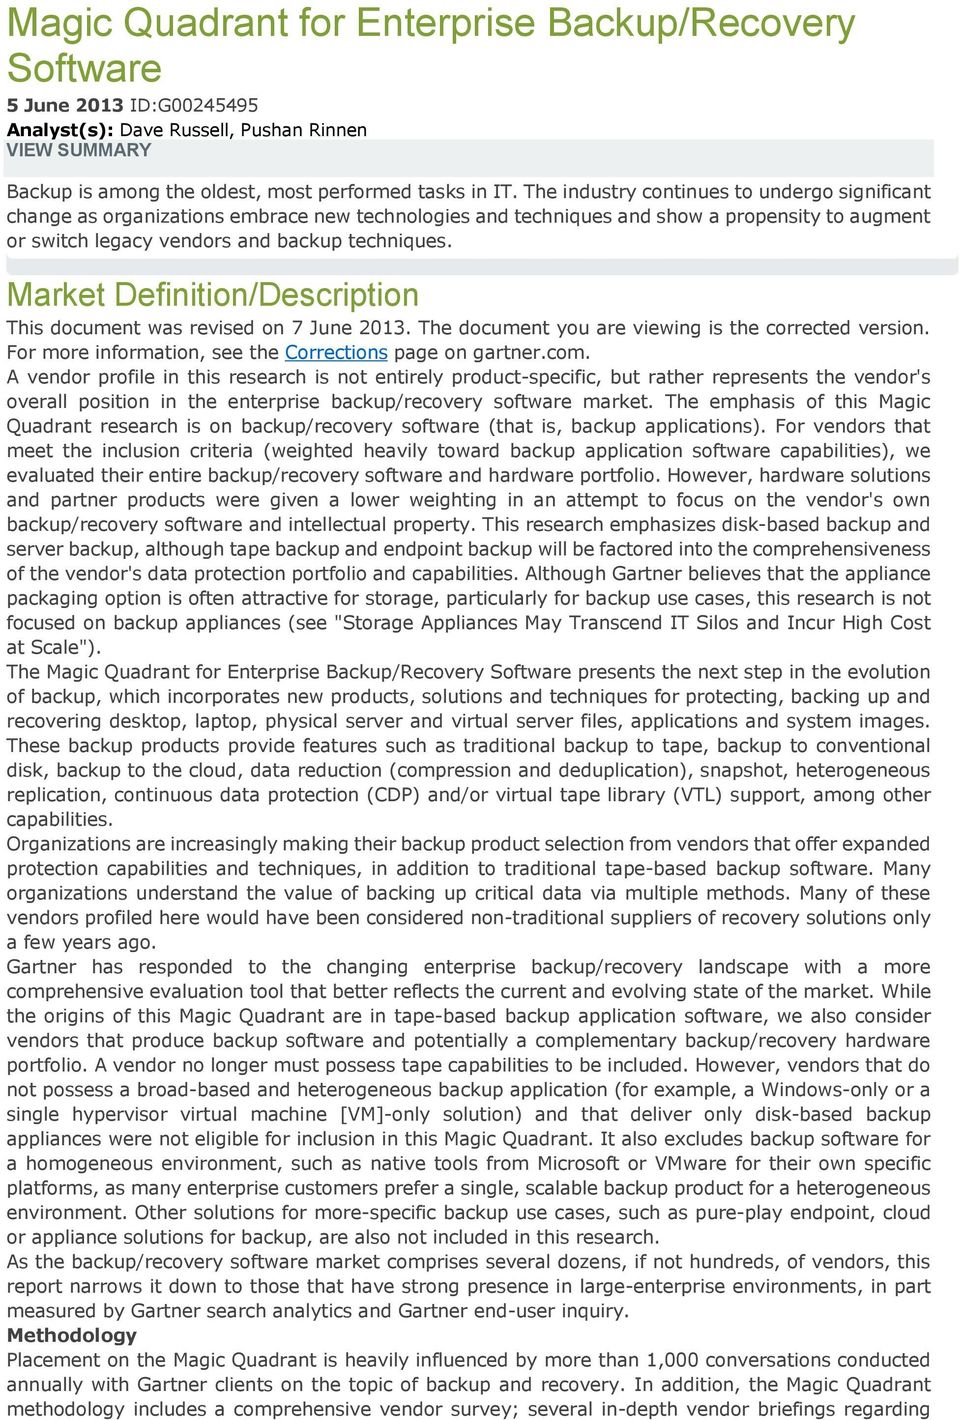 Market Definition/Description This document was revised on 7 June 2013. The document you are viewing is the corrected version. For more information, see the Corrections page on gartner.com.